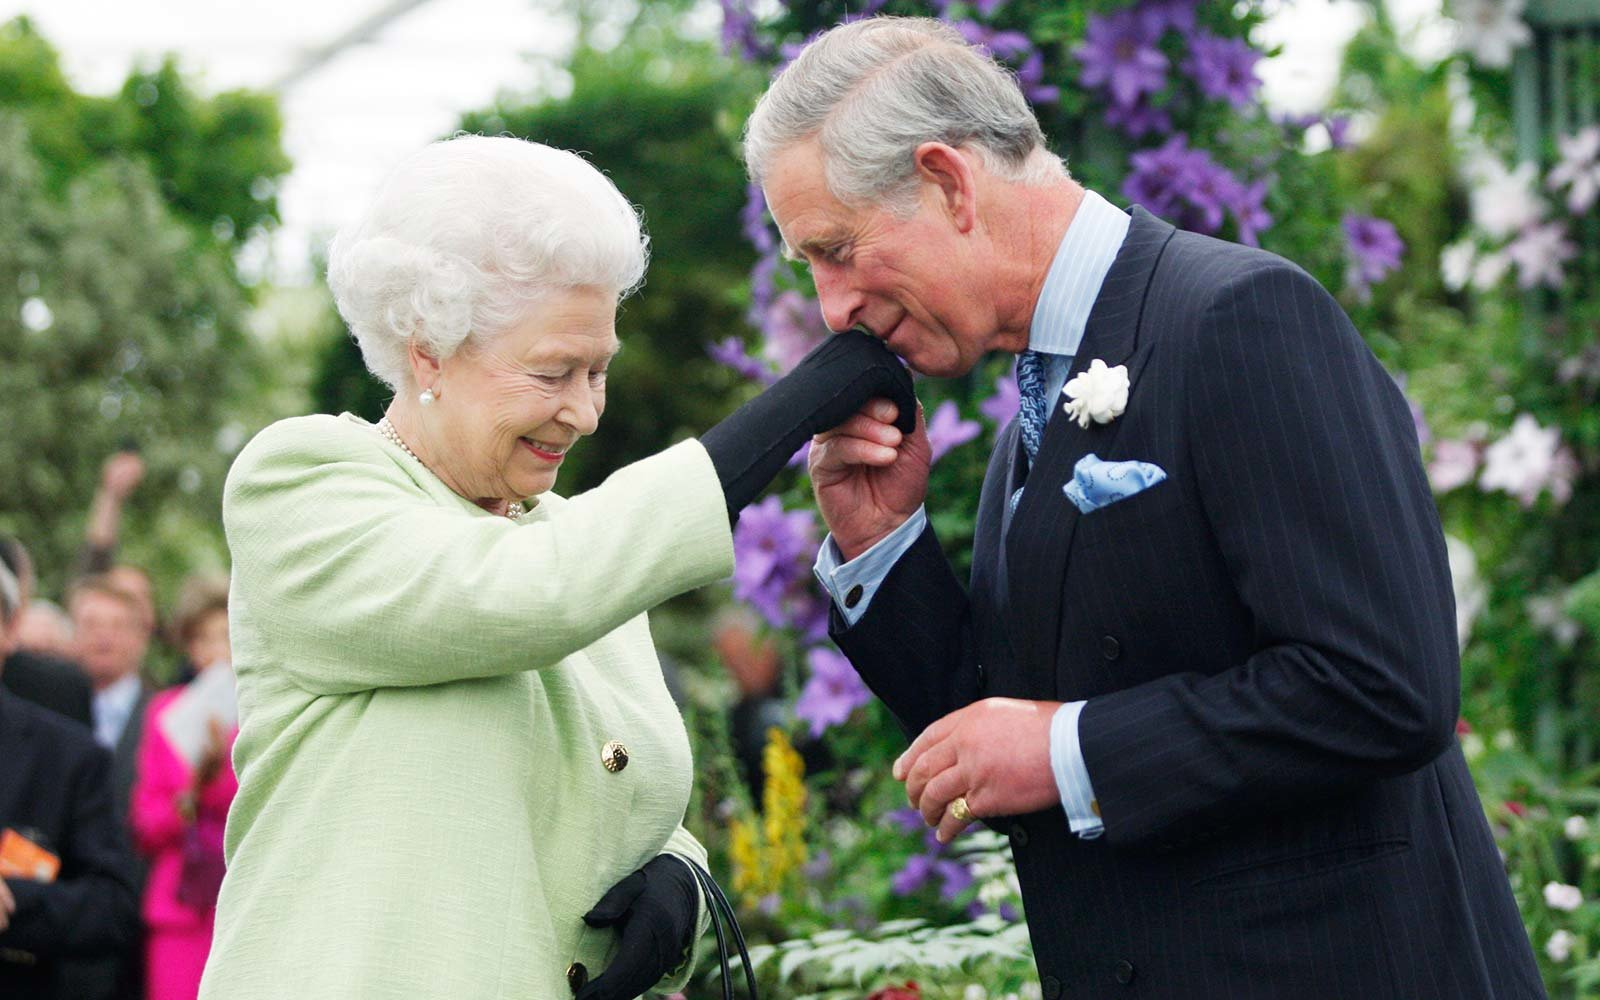 Queen Elizabeth II presents Prince Charles, Prince of Wales with the Royal Horticultural Society's Victoria Medal of Honour during a visit to the Chelsea Flower Show in London